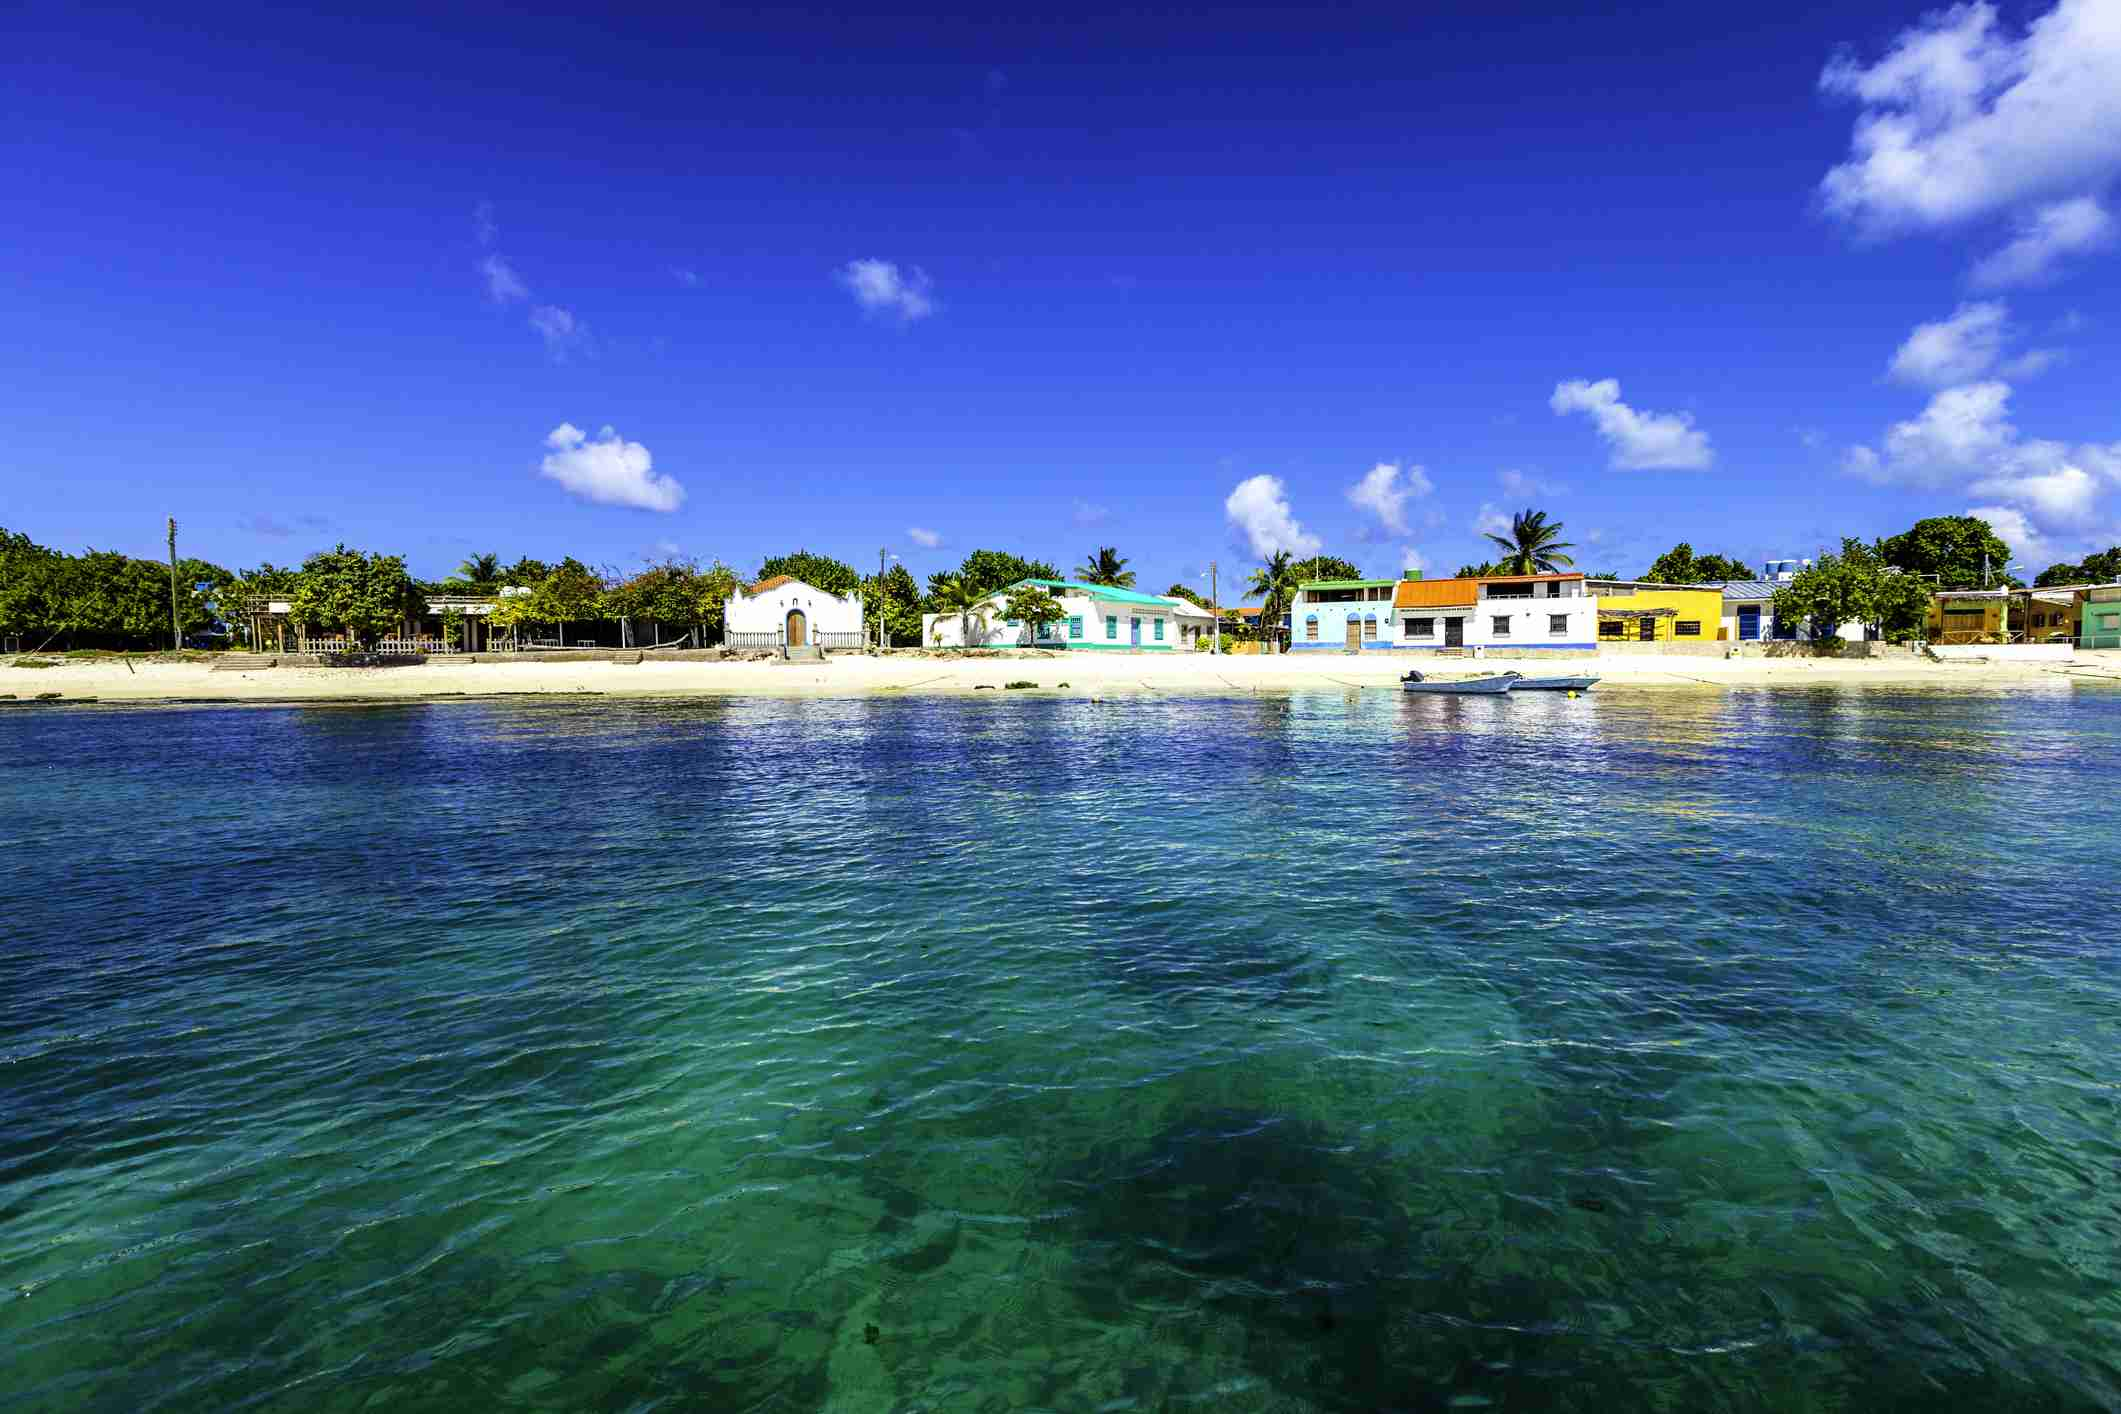 Los Roques town seen from the sea, Venezuela